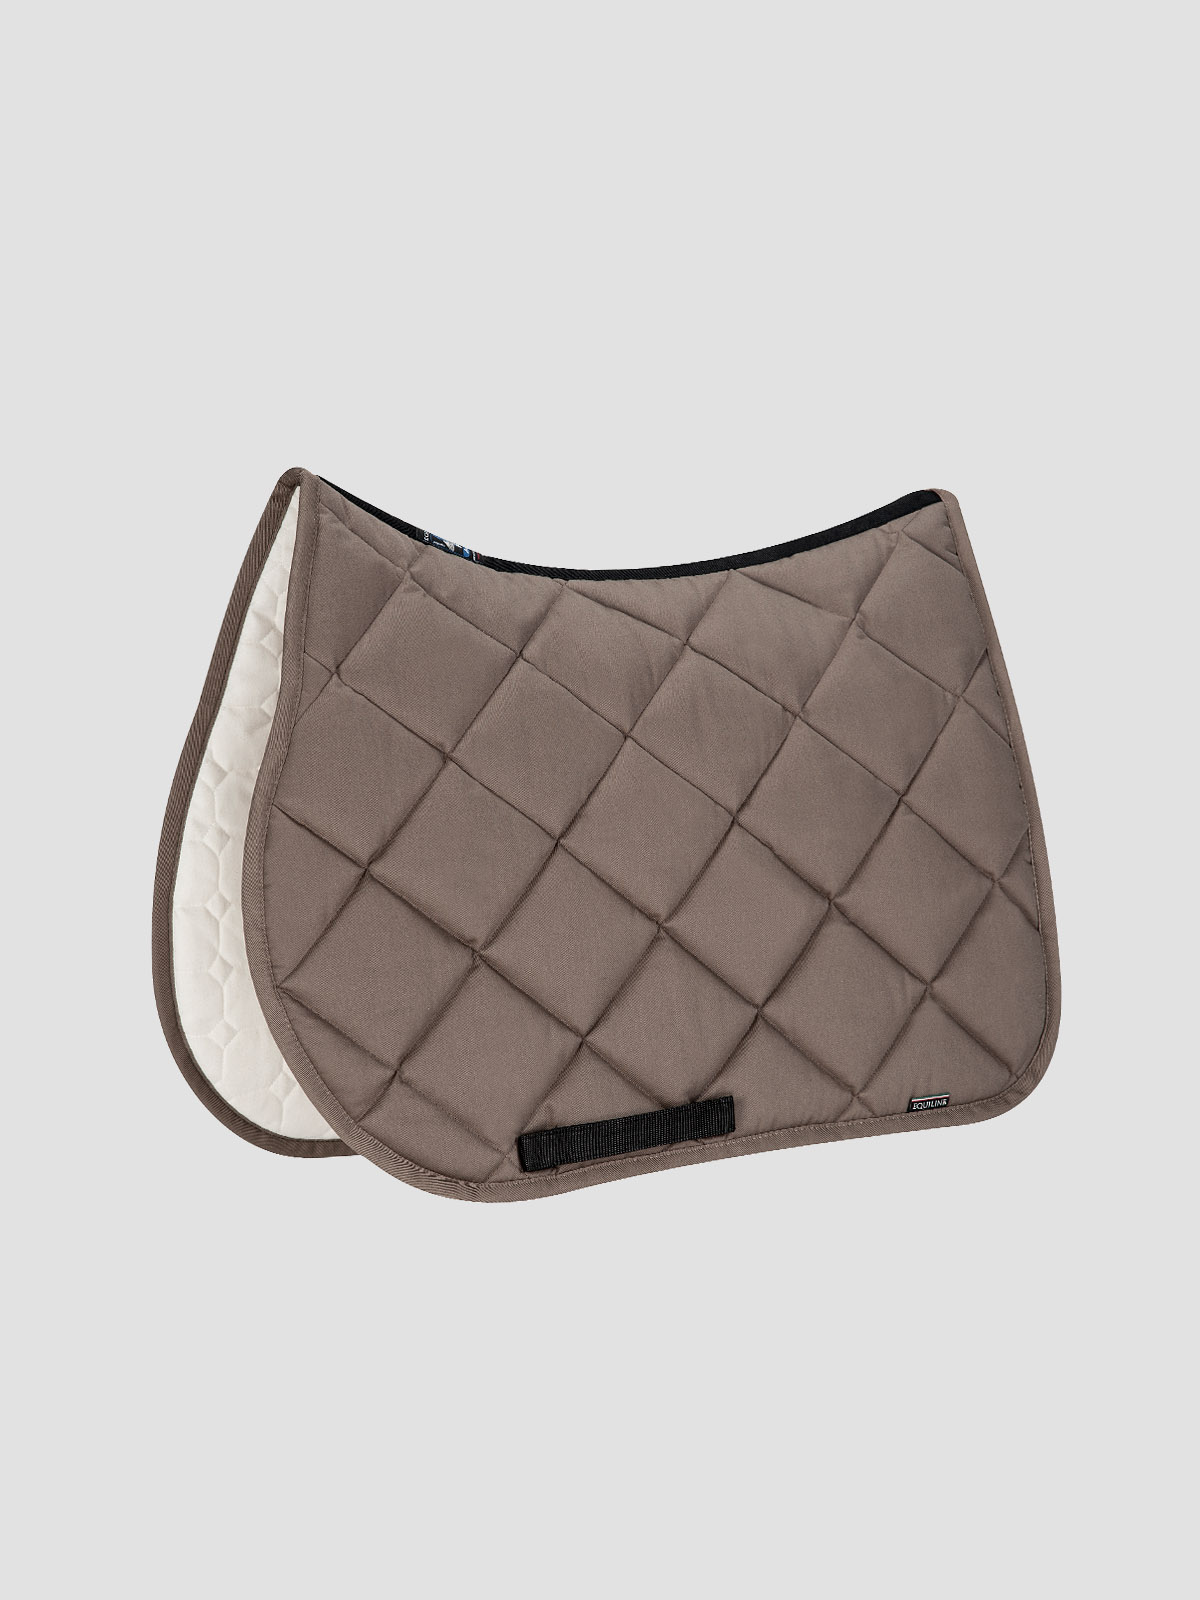 ROMBO - Rombo Saddle Pad 9